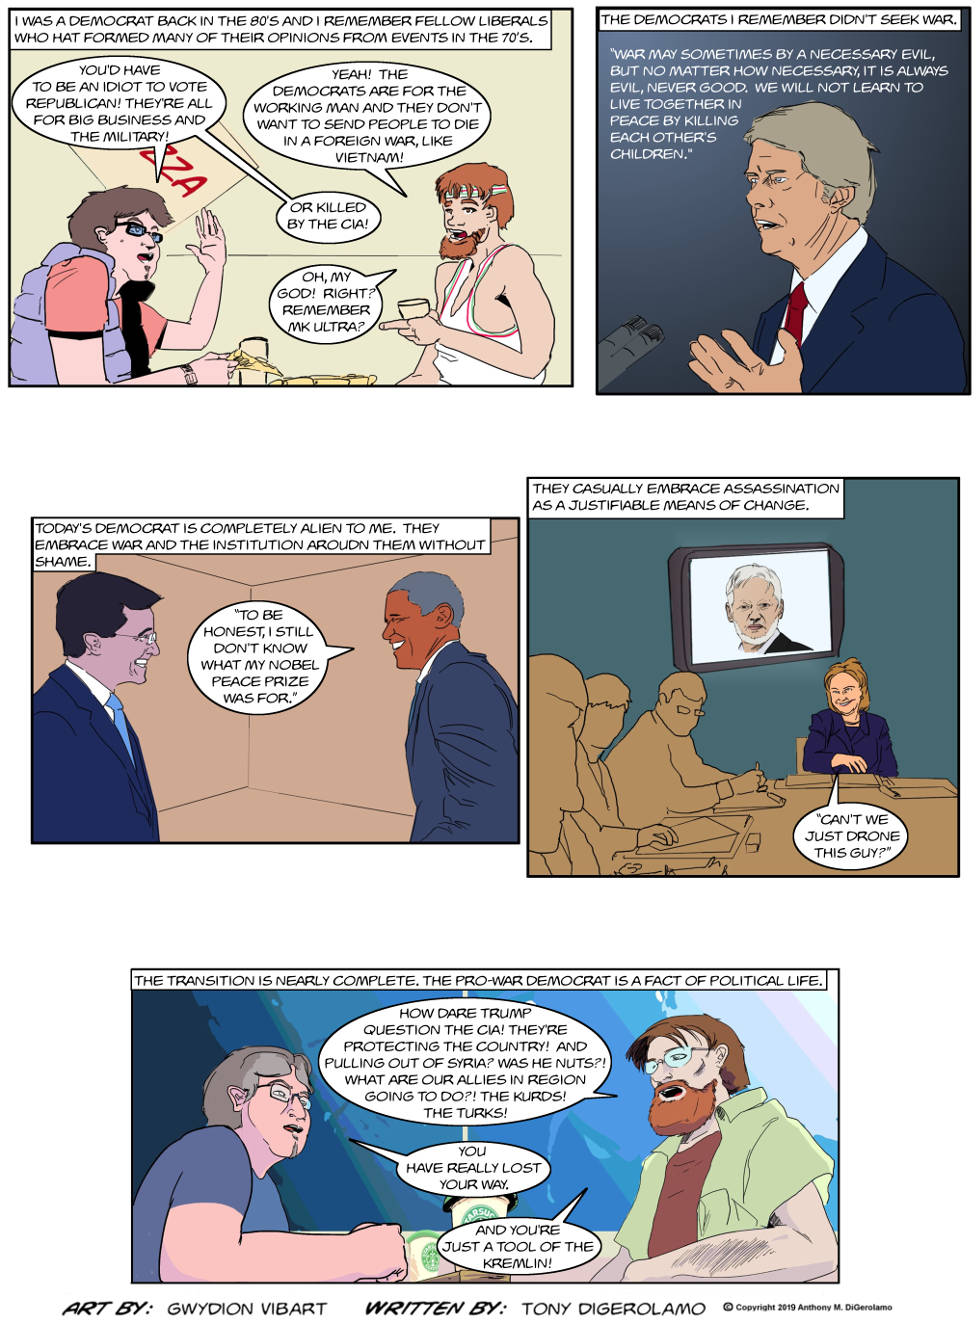 The Antiwar Comic: The Transformation